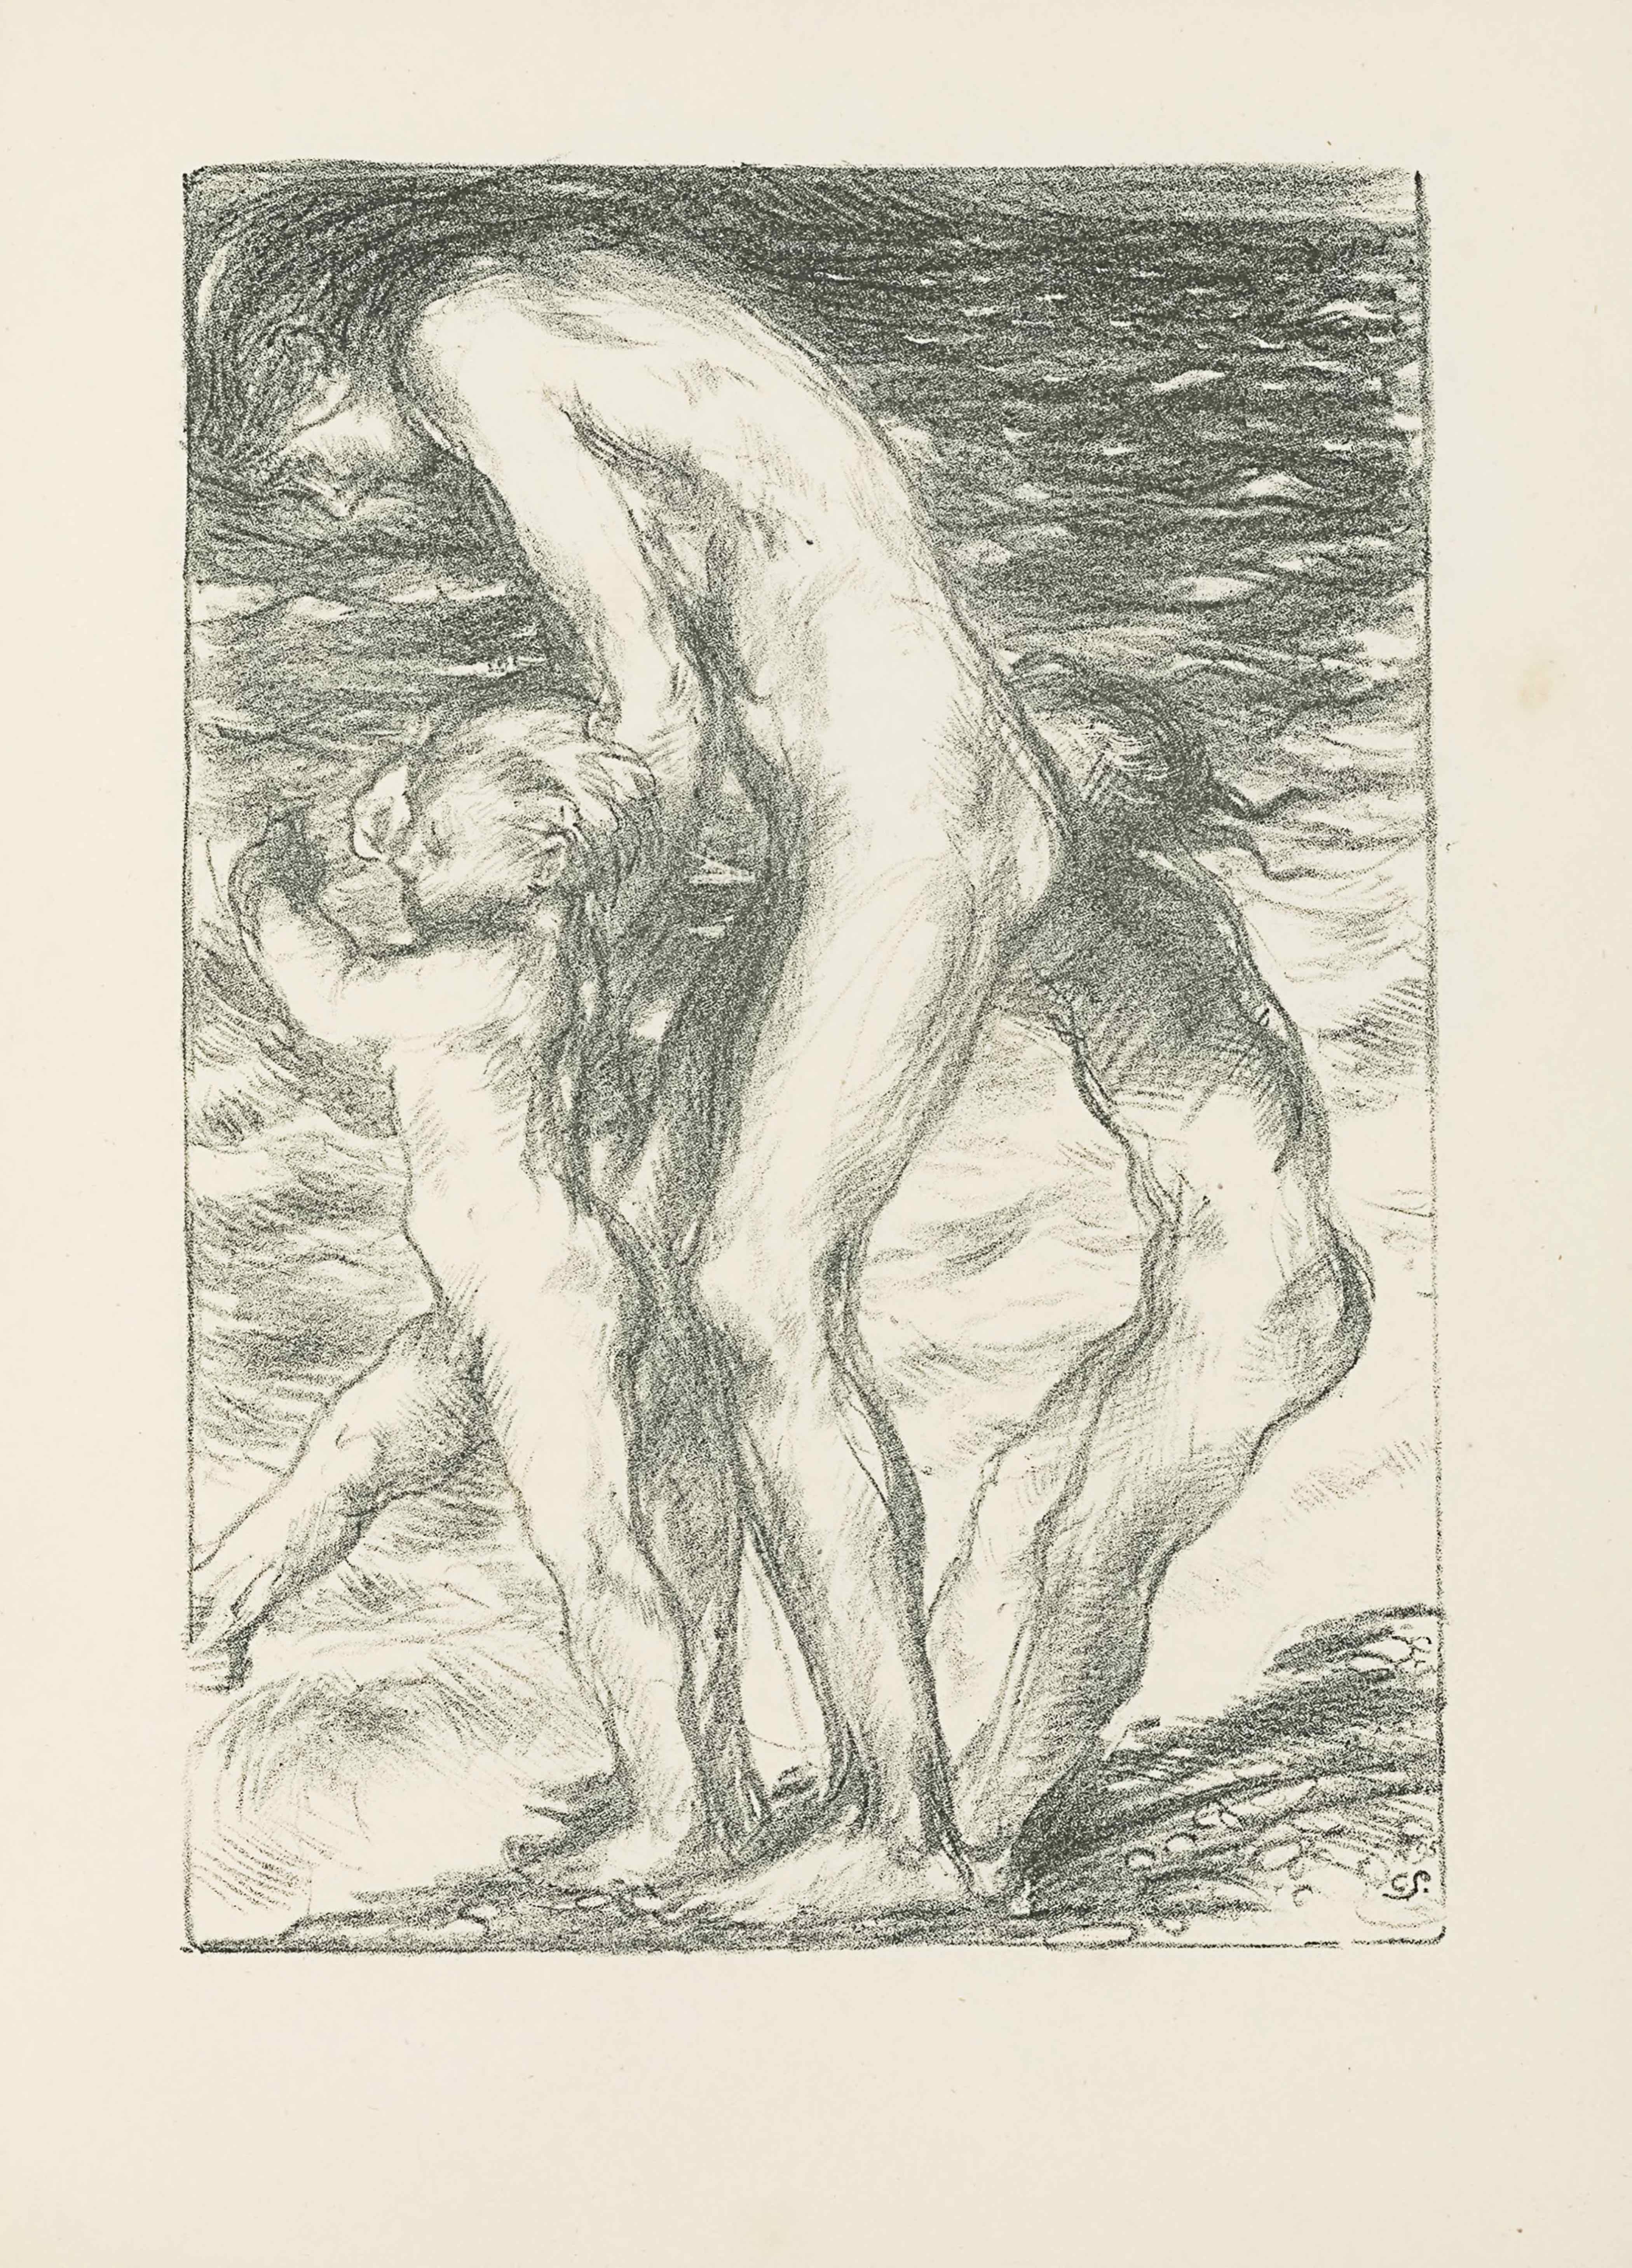 "This lithograph is in portrait orientation. The image shows three figures standing naked in profile on the shore of an ocean. The image is bordered by a single line. In the bottom right corner the artist's initials are lightly scrawled: ""CS."" [caps]. The central person in the centre is an adult female, standing at almost double the height of the two child figures in front and behind of her body and on either side of her. The beach that they stand on takes up a very small portion of the page, cutting diagonally up to the right and only taking up about a tenth of the page as a whole. A few small rocks and stones appear in the sand. The white wave caps from the ocean are touching the figures' toes. The wavy water takes up the entirety of the background, all the way to the top edge of the page with only a slight glimpse of skyline beyond the water in the top right corner. The female figure is drawn hunched forward with her arms extended down and out. Her left arm is holding the boy's arm in front of her and her right arm is covered by her body but seems to be holding the hand of the child behind and to the right of her. She has a muscular form and long dark hair. Her head is positioned to look straight down at the boy in front of her. The boy in front of her, on the left side of the page, is light-haired and mid-step. His left leg is planted in the sand while his right is extended straight out and forward His left arm is swinging up and bent at the elbow. His right arm is out of view and he looks to be holding hands with the woman. The child behind the woman and to the right is visible only by their body and the back of their head: their face is covered by the woman's body. The child is holding onto the woman's right arm and leaning backwards, bent at the waist with feet planted in front of them. Long hair falls down the child's back to the waist. The hair seems to be wet."